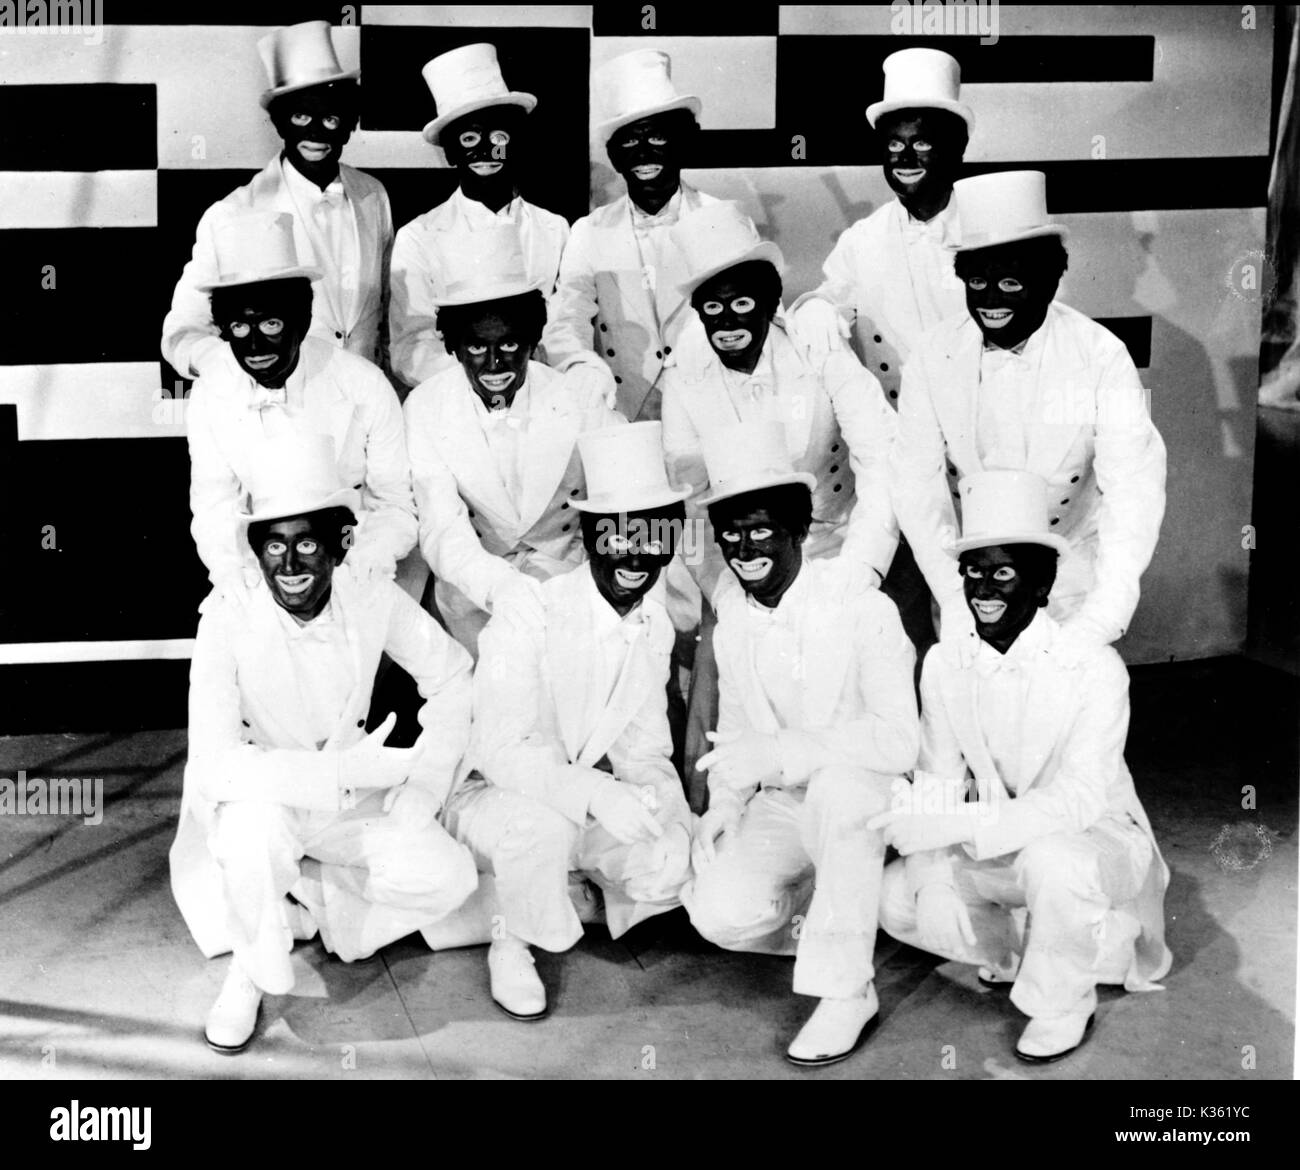 The black and white minstrel show stock image